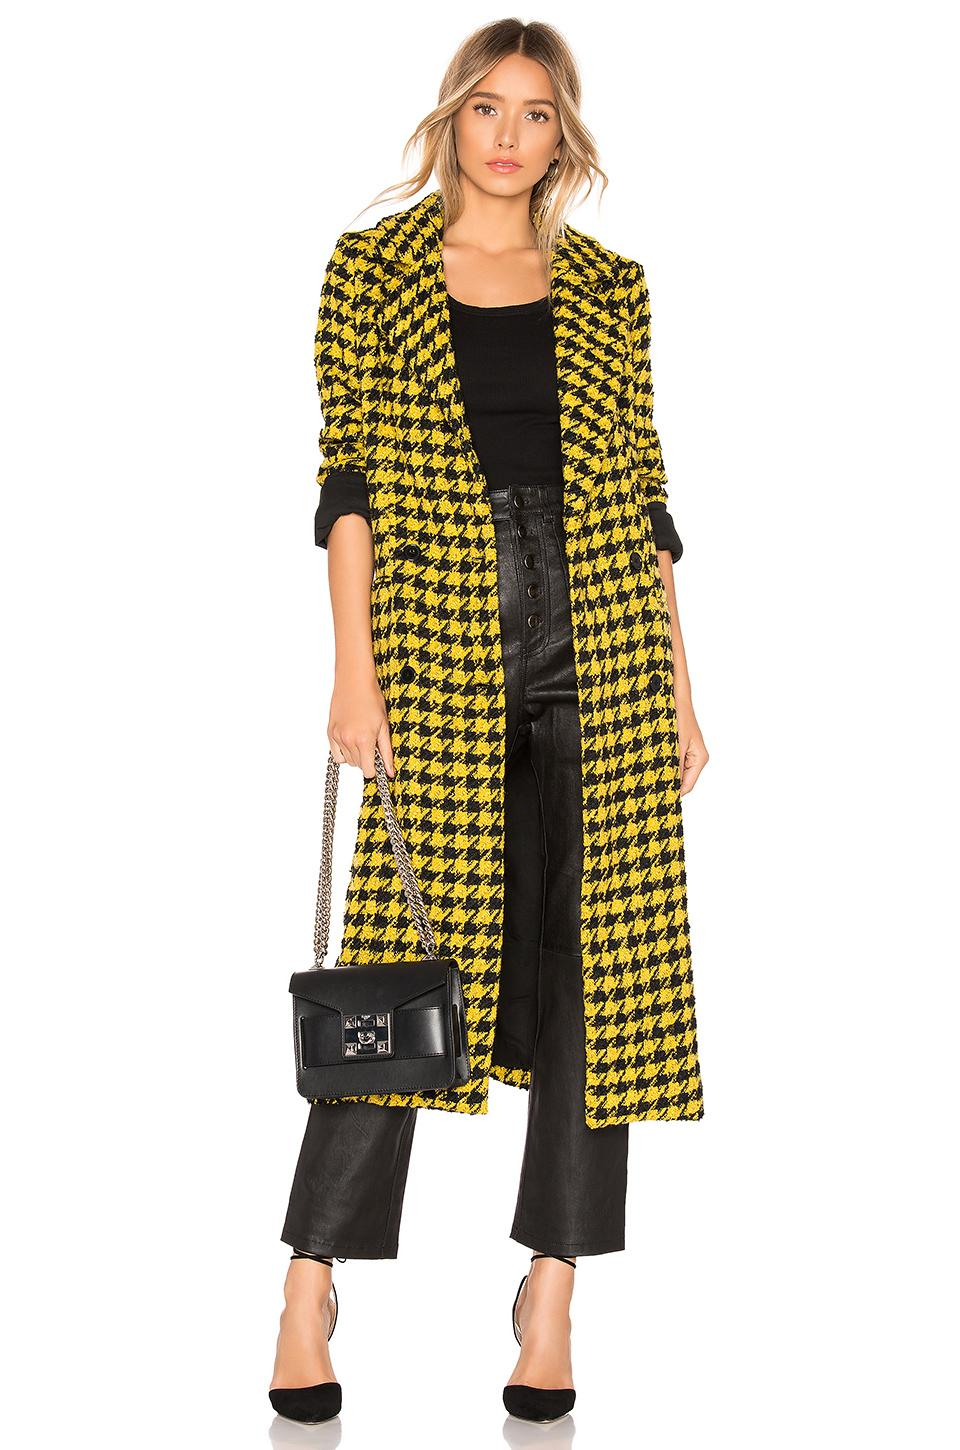 a35709bb1874 House Of Harlow 1960 X Revolve Perry Coat In Yellow & Black | ModeSens